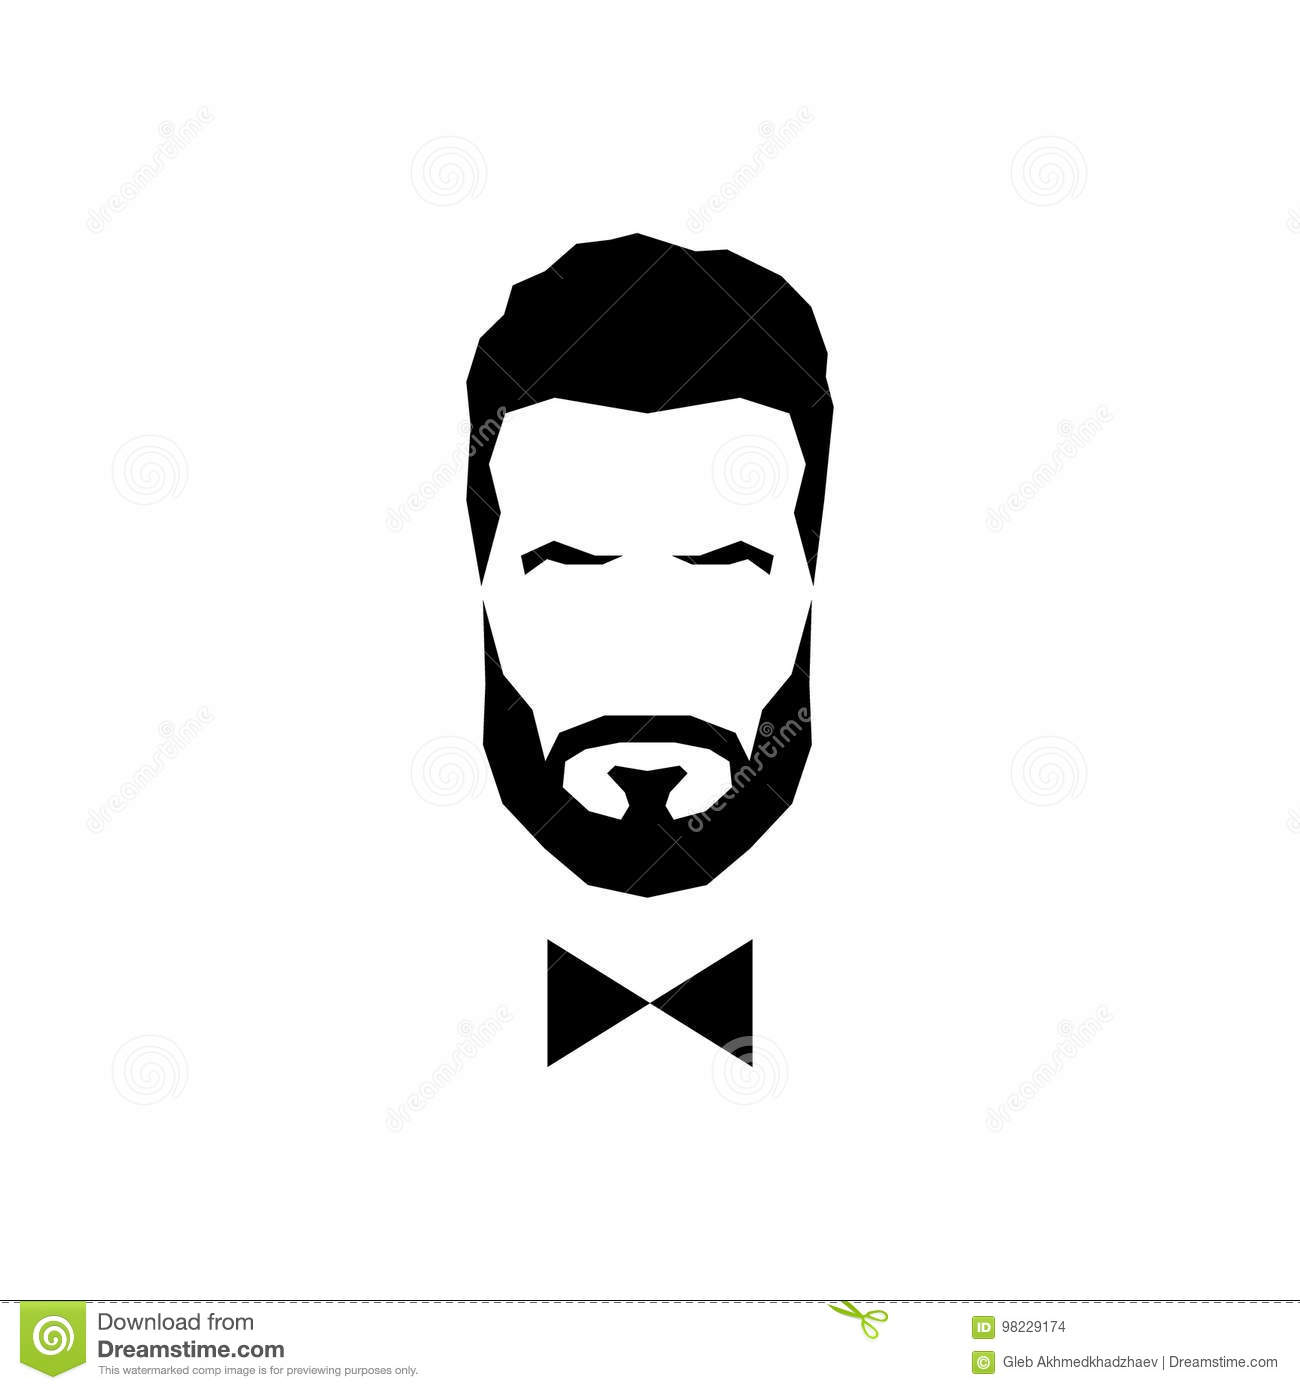 269bc7e56709 Royalty-Free Vector. Gentleman avatar with bow tie. Download preview